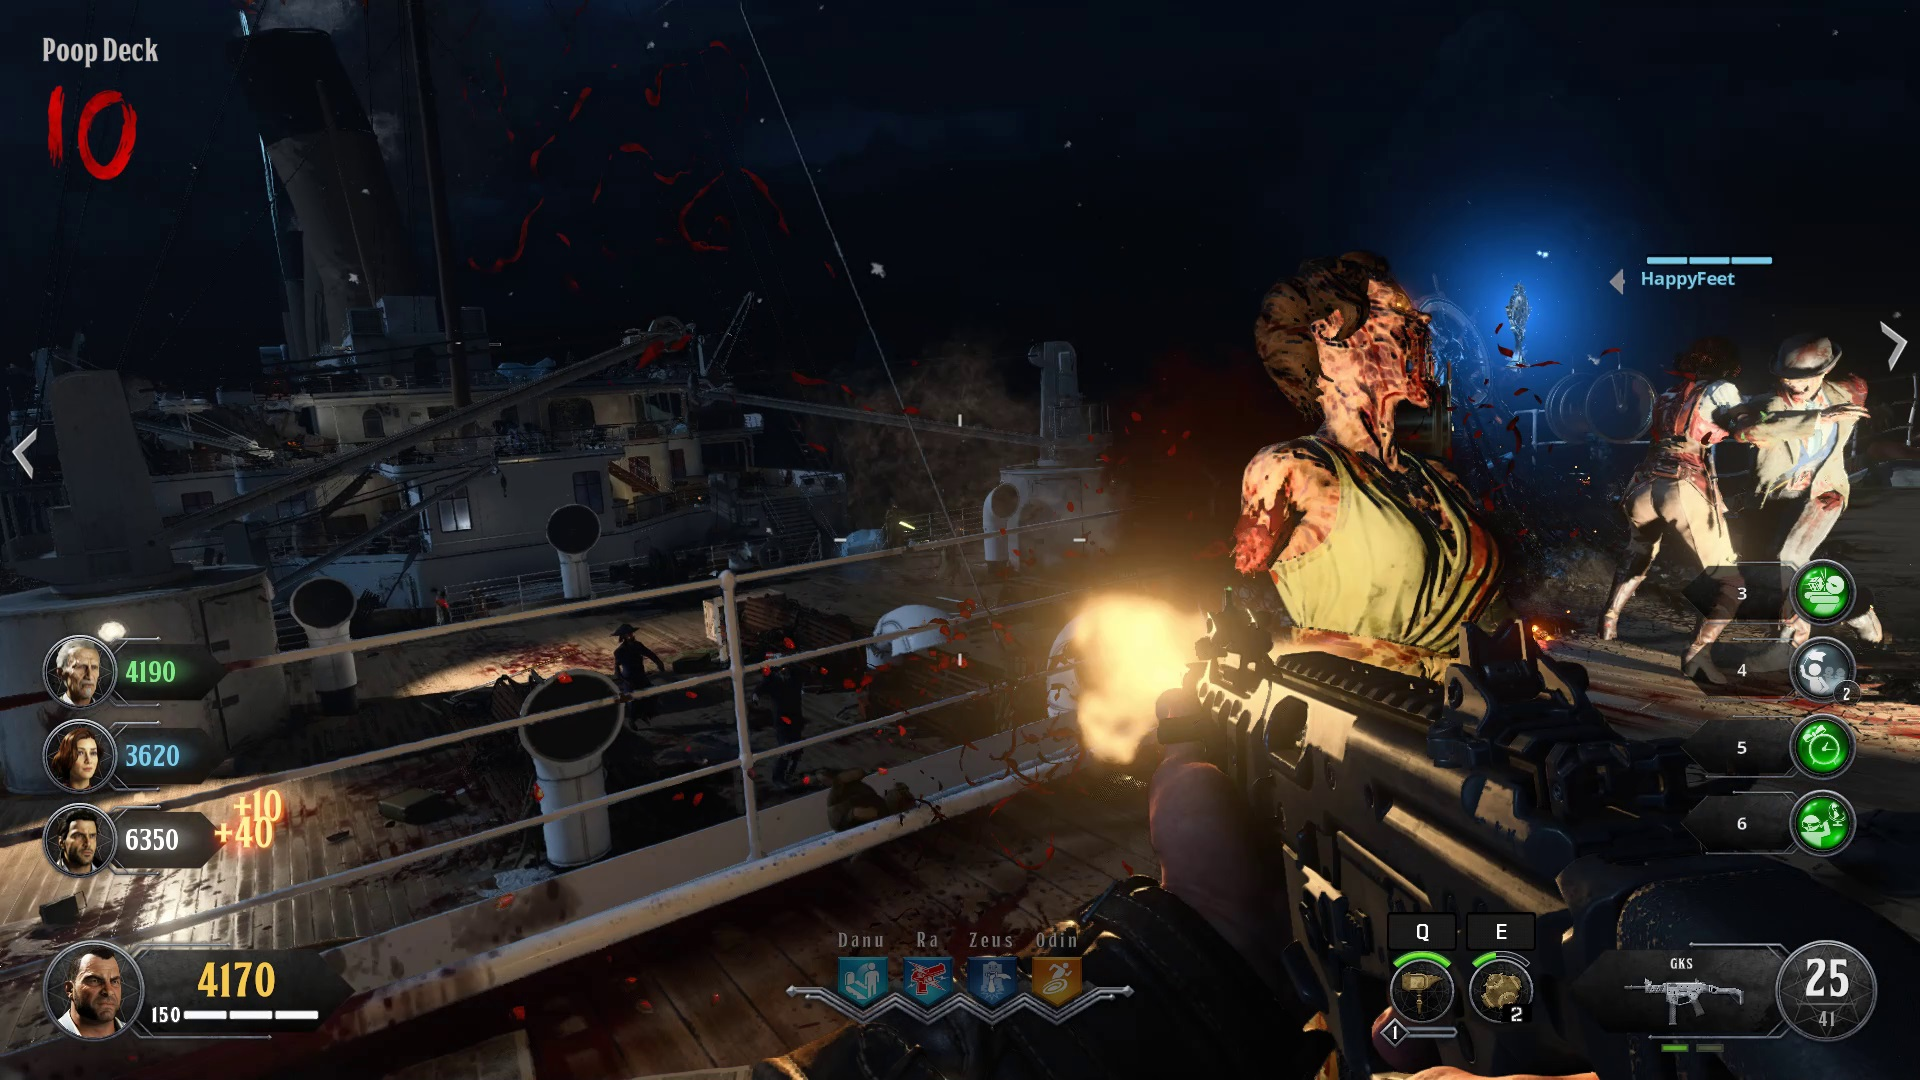 CoD Zombies is Ready to Step up and Replace Black Ops 4's Missing